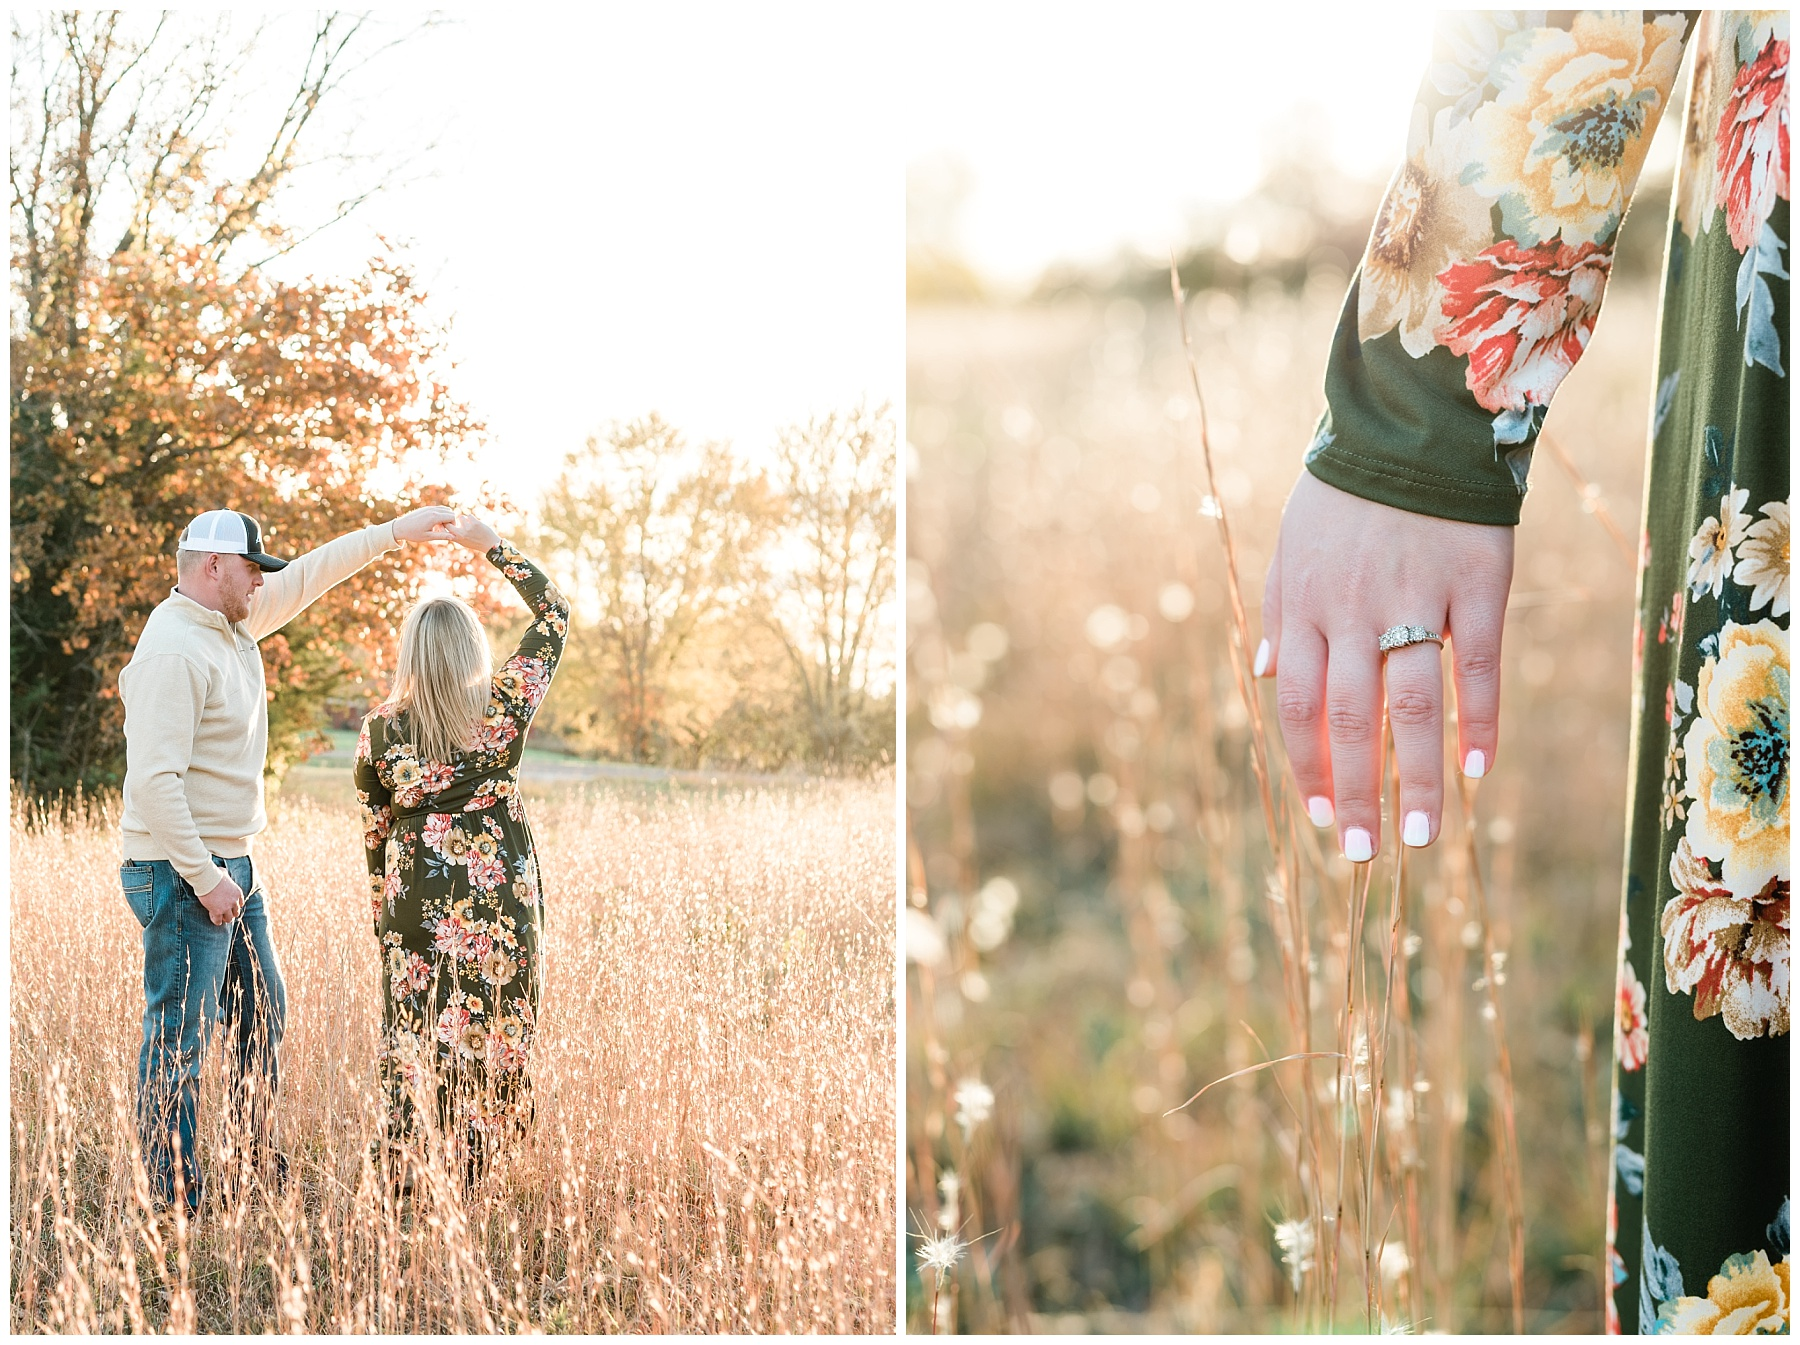 Perfect Sunset Engagement Session in Fall by Kelsi Kliethermes Photography Kansas City Missouri Wedding Photographer_0008.jpg